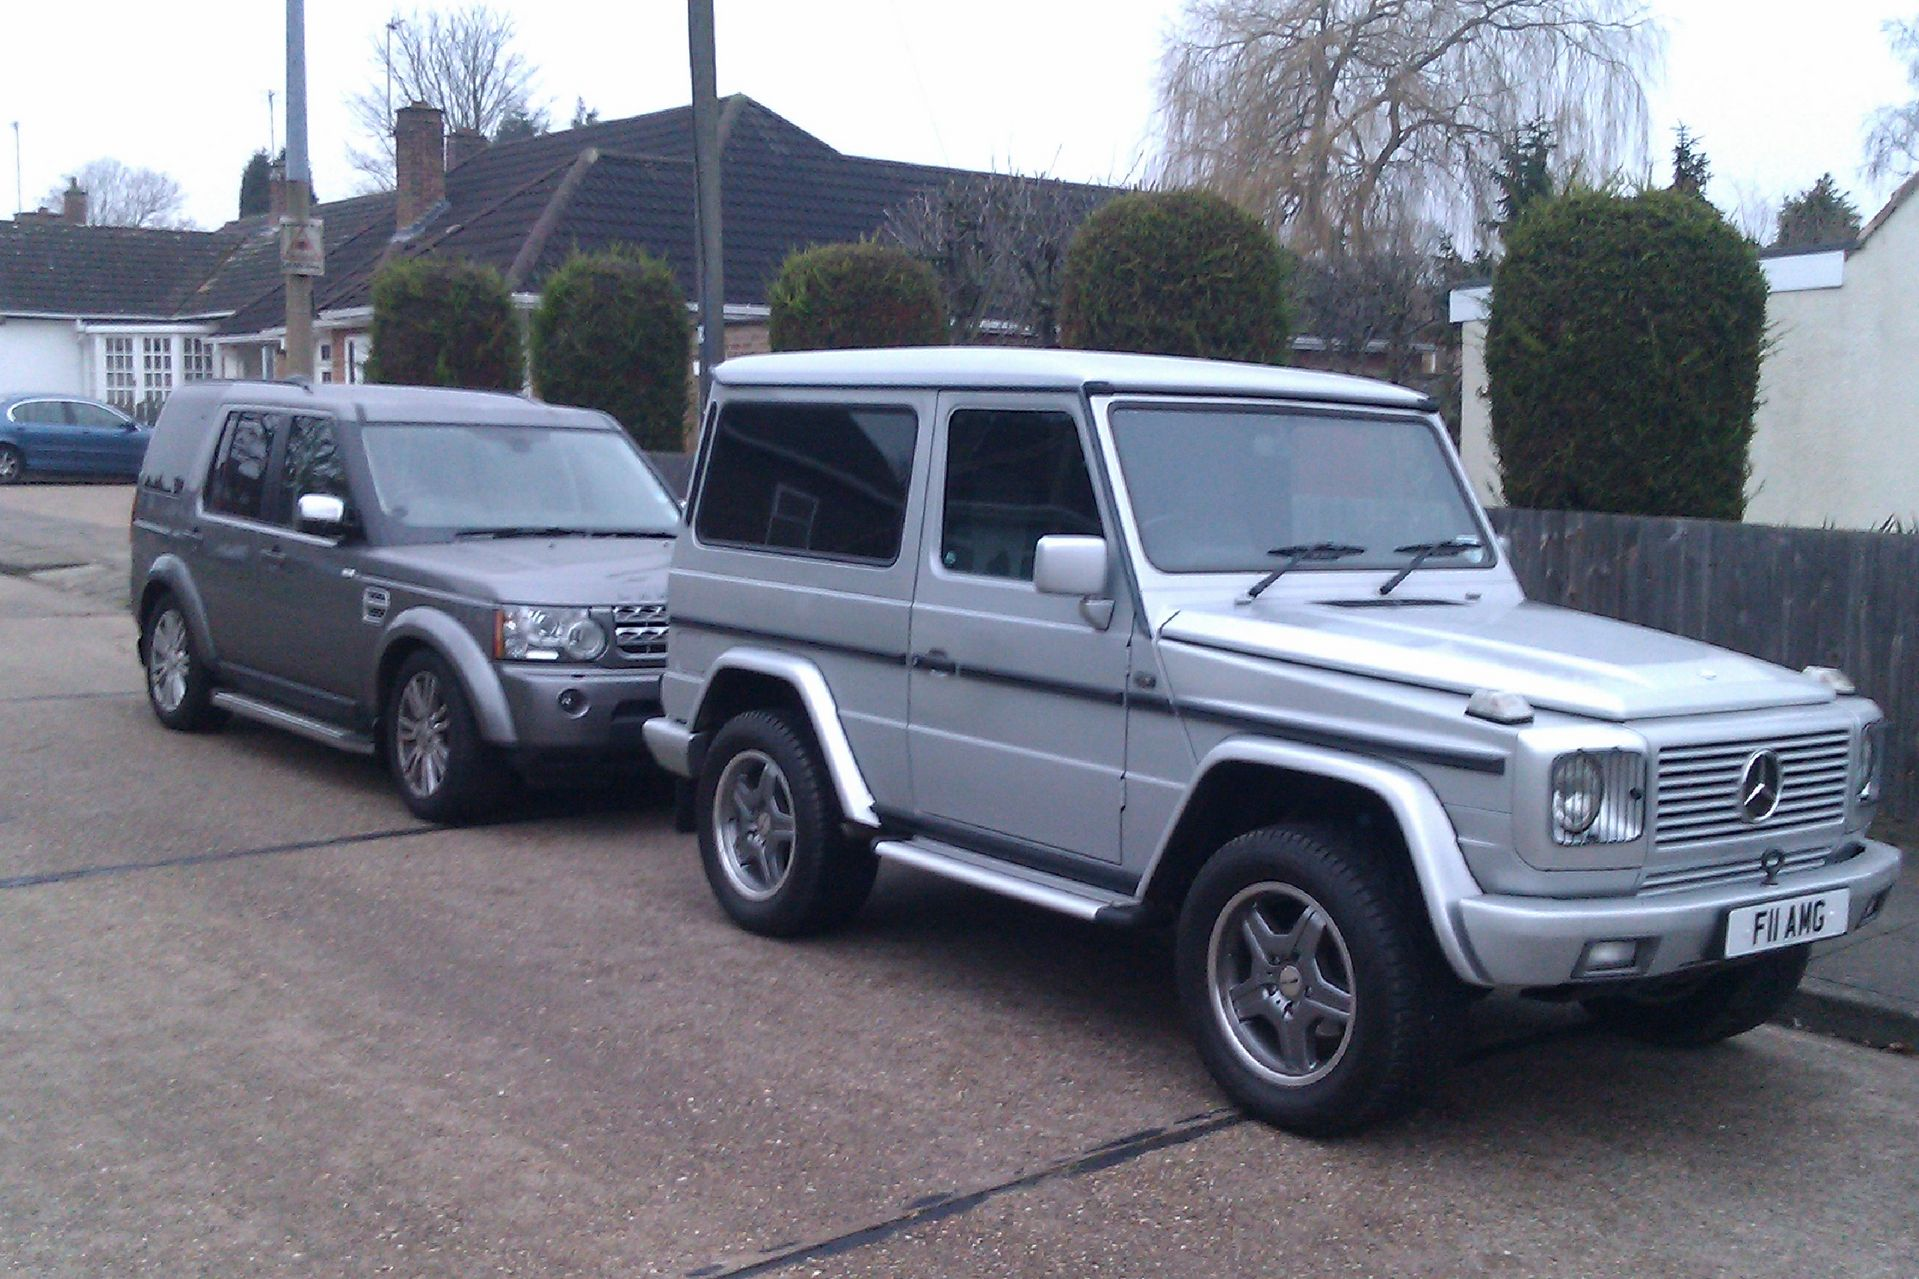 2015 Mercedes Benz G 500 4x4 Squared Review furthermore Topic75015 also Klassik Test Audi Rs2 3710725 moreover Mercedes New Glb Class Mini G Wagon moreover 1028339 2020 Audi Q8 Spy Shots. on old mercedes wagon